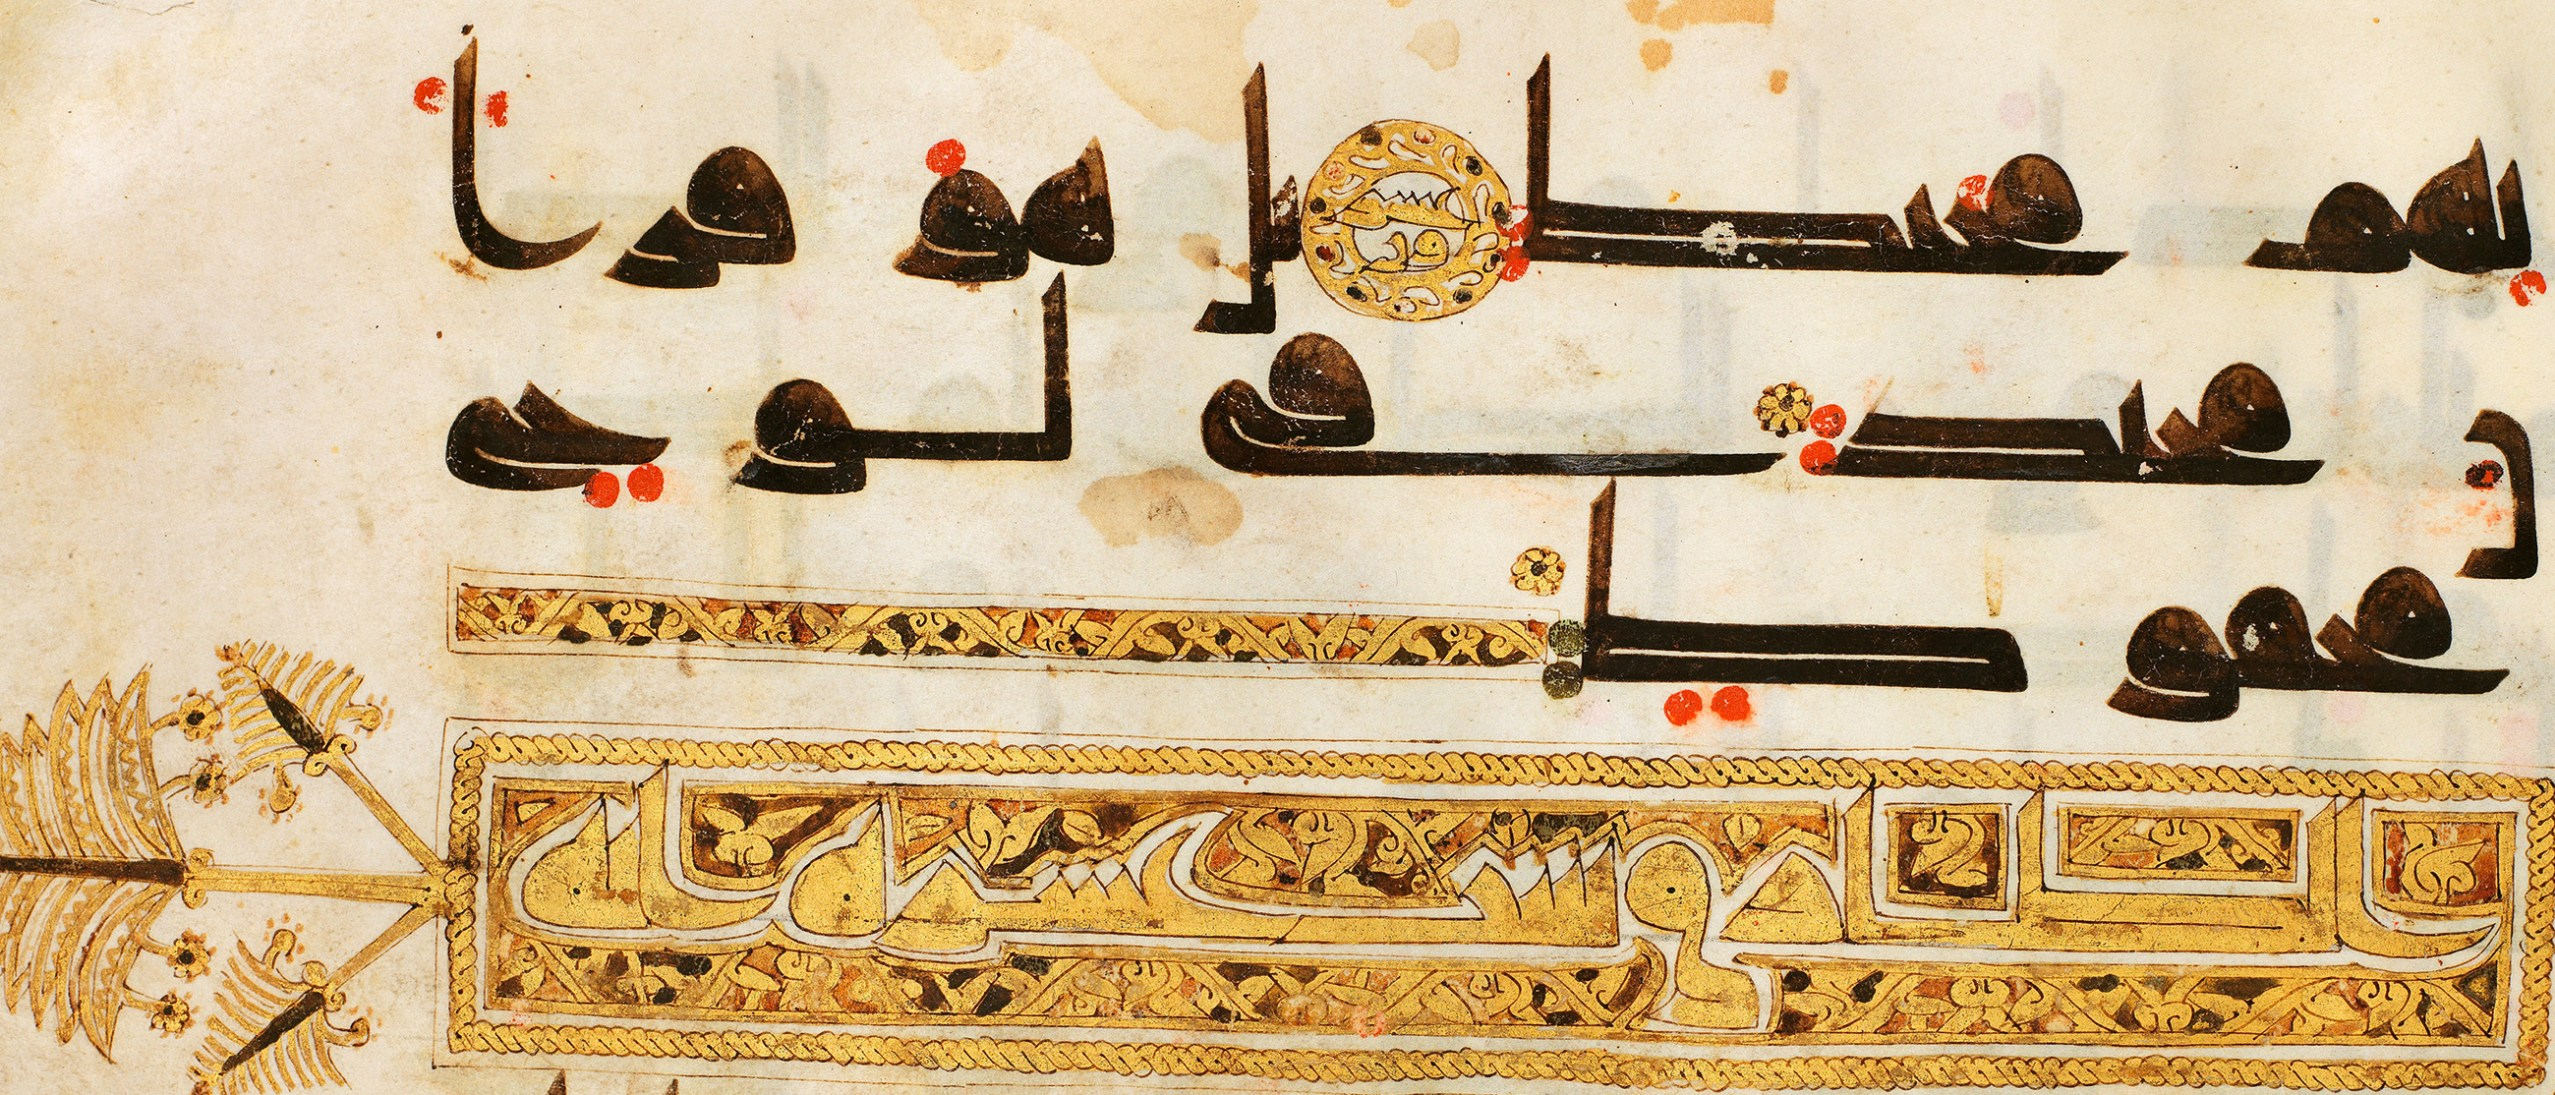 Detail image, Qur'an folios; Near East, Abbasid period, late 9th–early 10th century; Ink, gold, and color on parchment; Transferred from the Damascus Umayyad Mosque to Topkapı Palace in 1911 and to the Museum in 1913; Museum of Turkish and Islamic Arts, ŞE 611